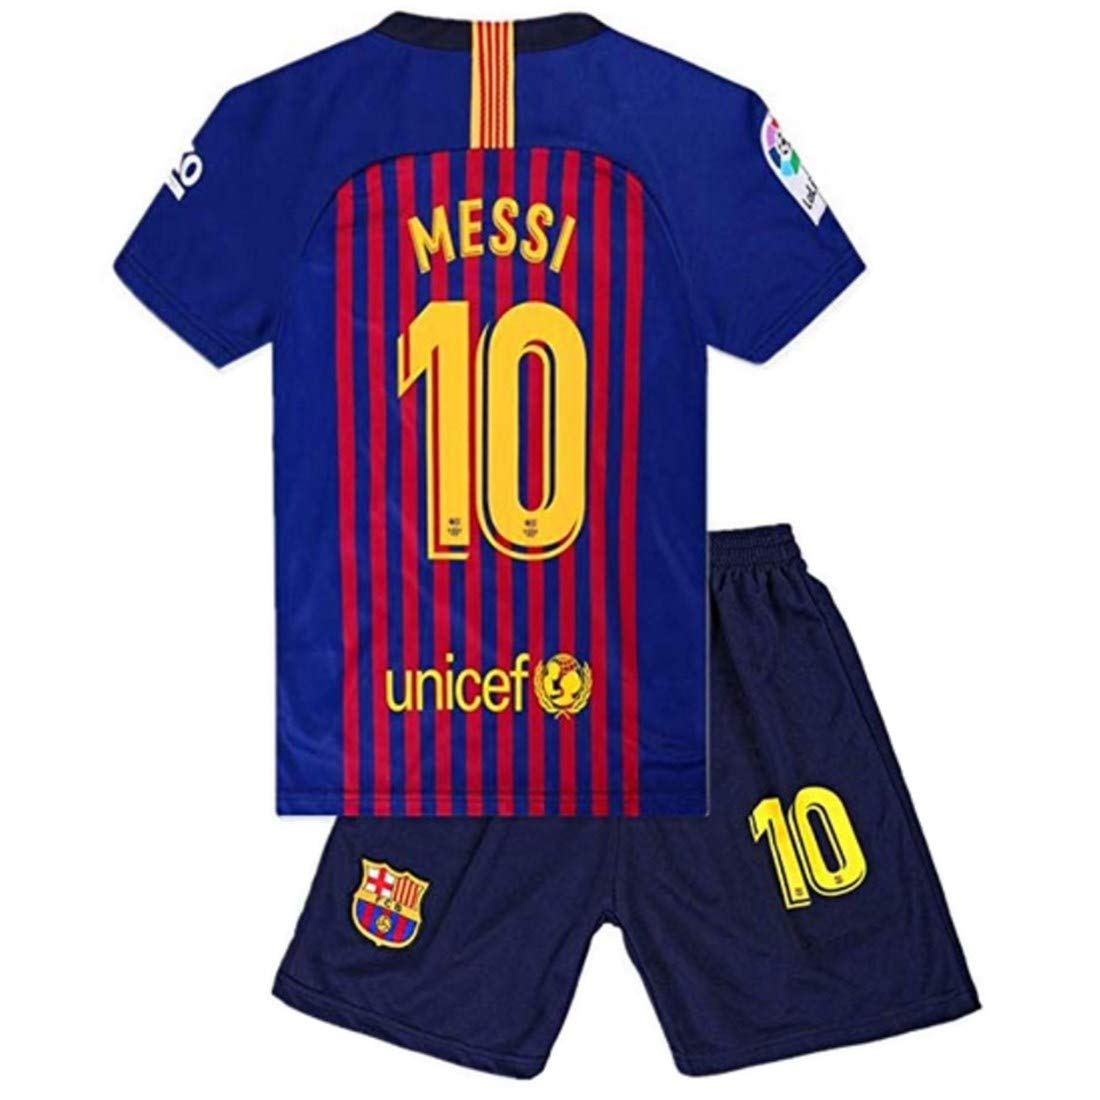 d1f800d8248 Amazon.com: #10 Messi Barcelona Kids/Youth Home Boys Soccer Jersey & Shorts  18-19 Season Red/Blue: Clothing